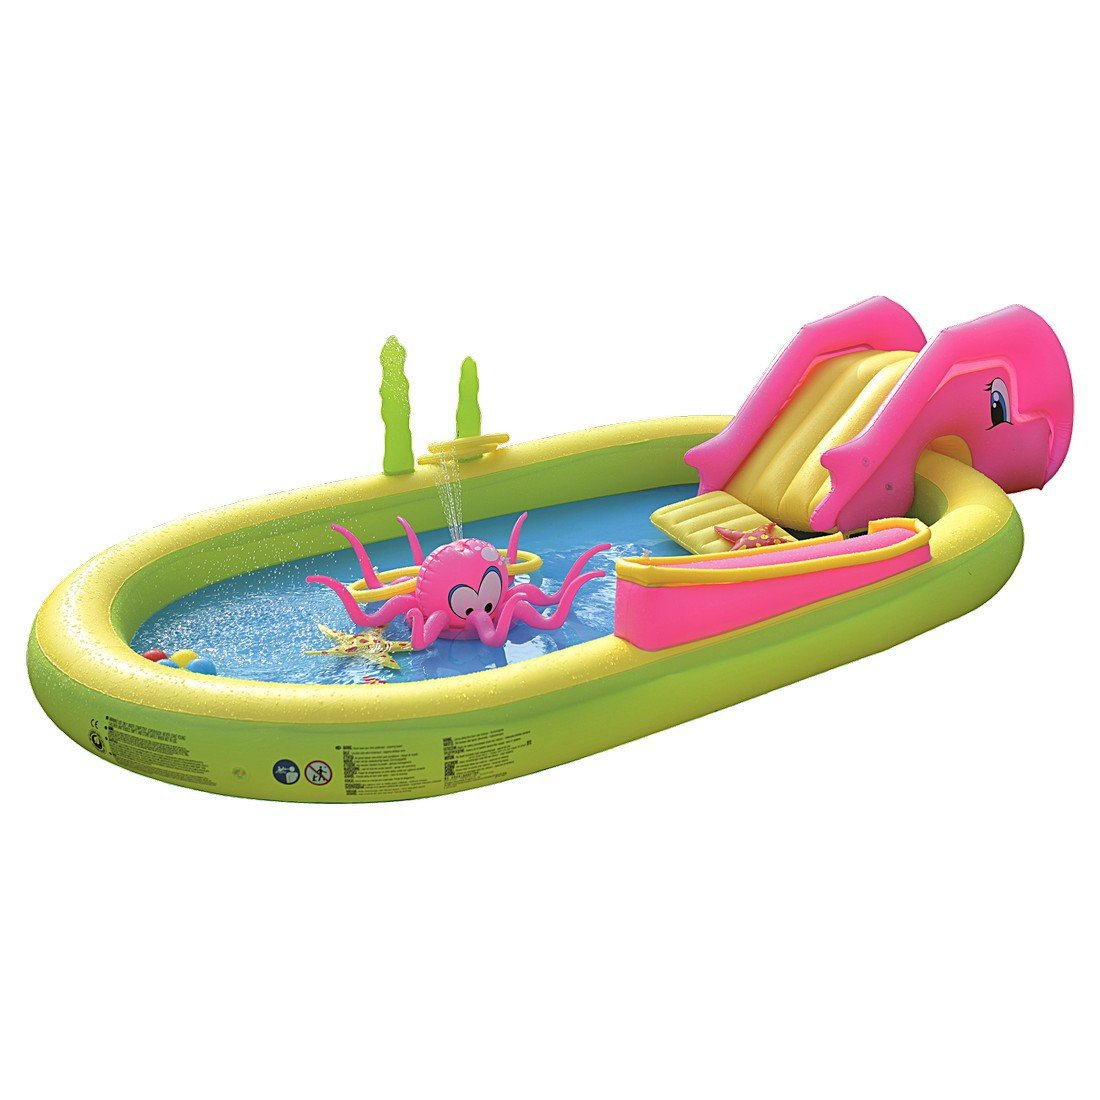 Jilong 97009 Fun Piscina Multigioco Sea Animal con Scivolo e Spruzzi, Multicolore 298 cm x 165 cm x 55 cm JL097009NPF -P103